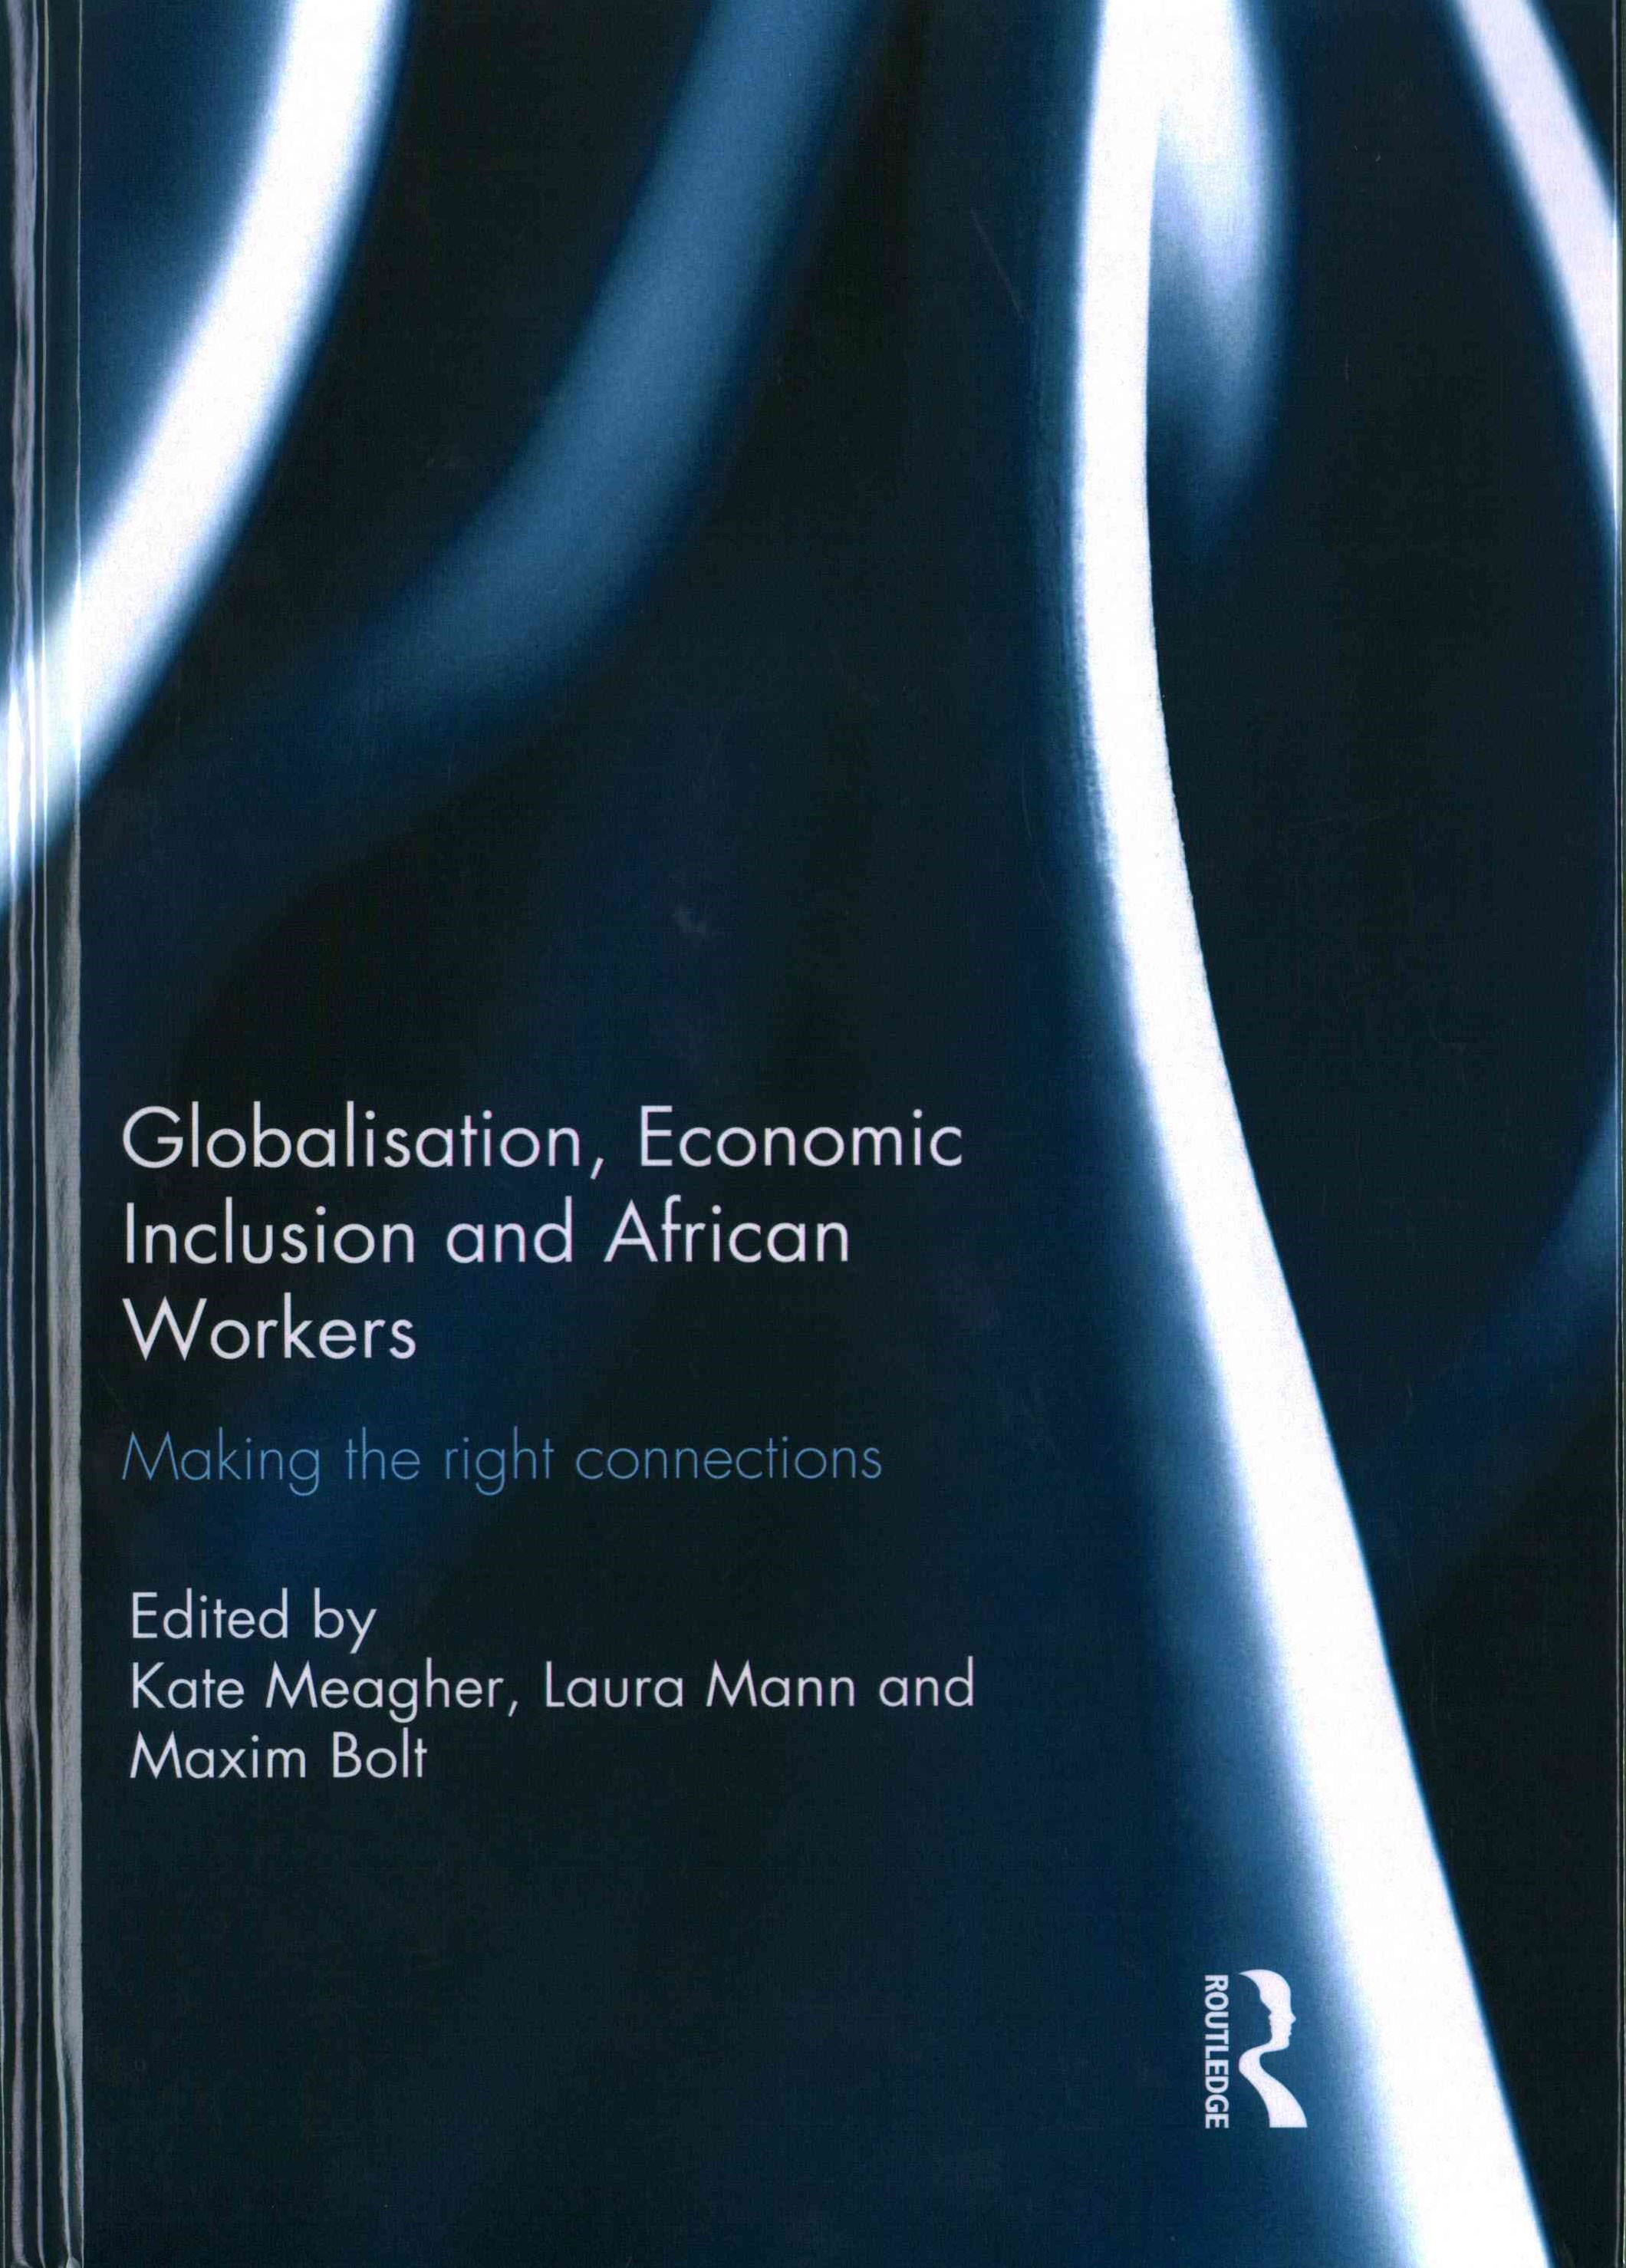 Globalisation, Economic Inclusion and African Workers